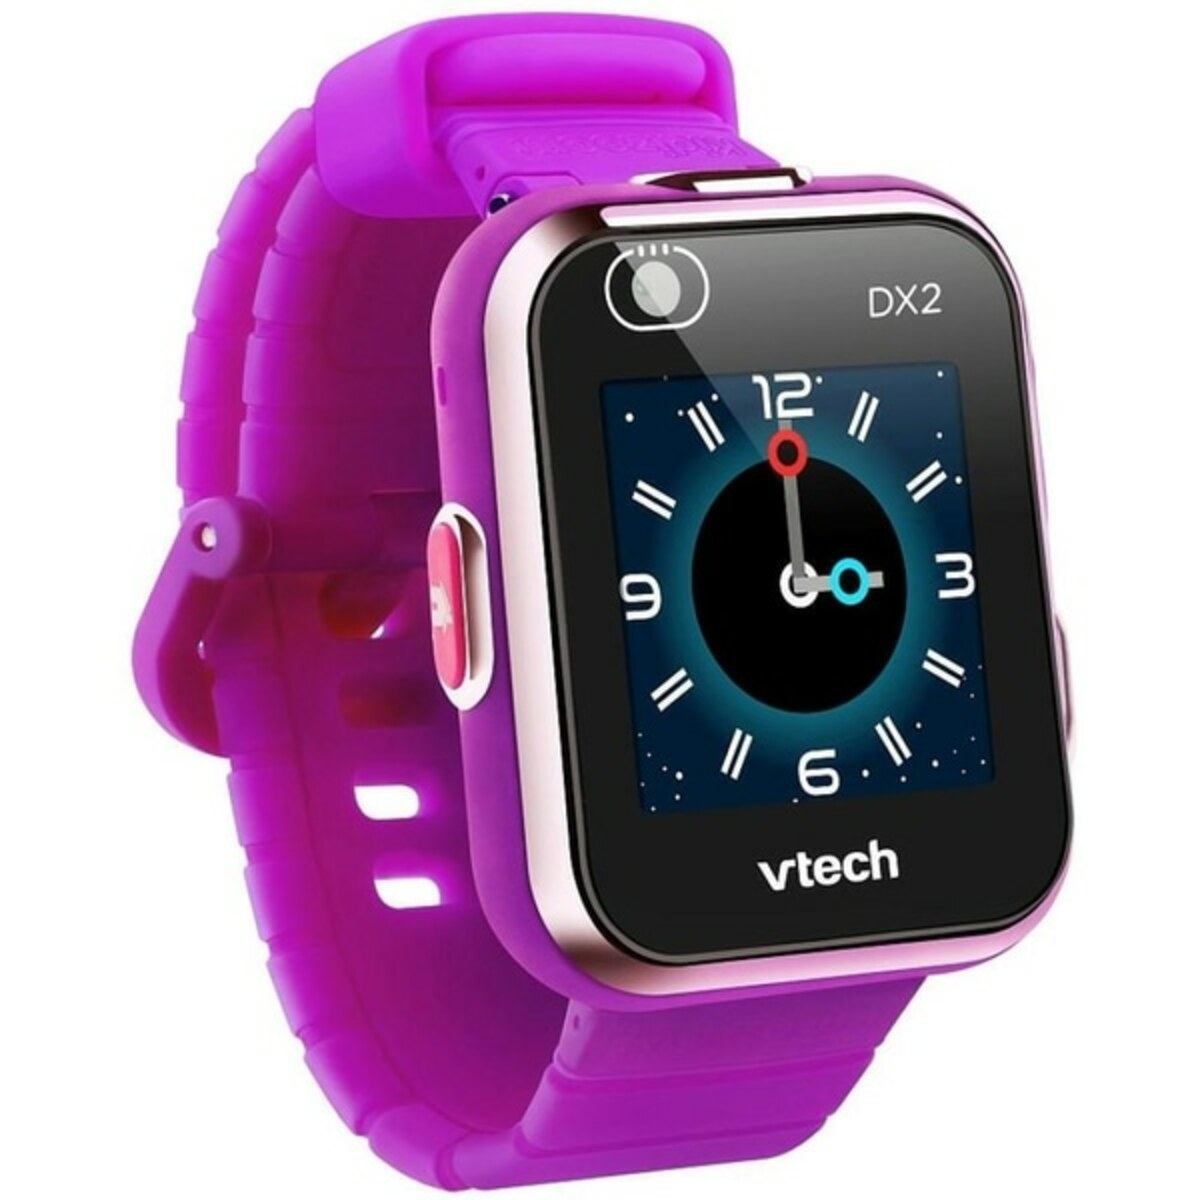 Bild 1 von VTech - Kidizoom: Smart Watch DX2, lila